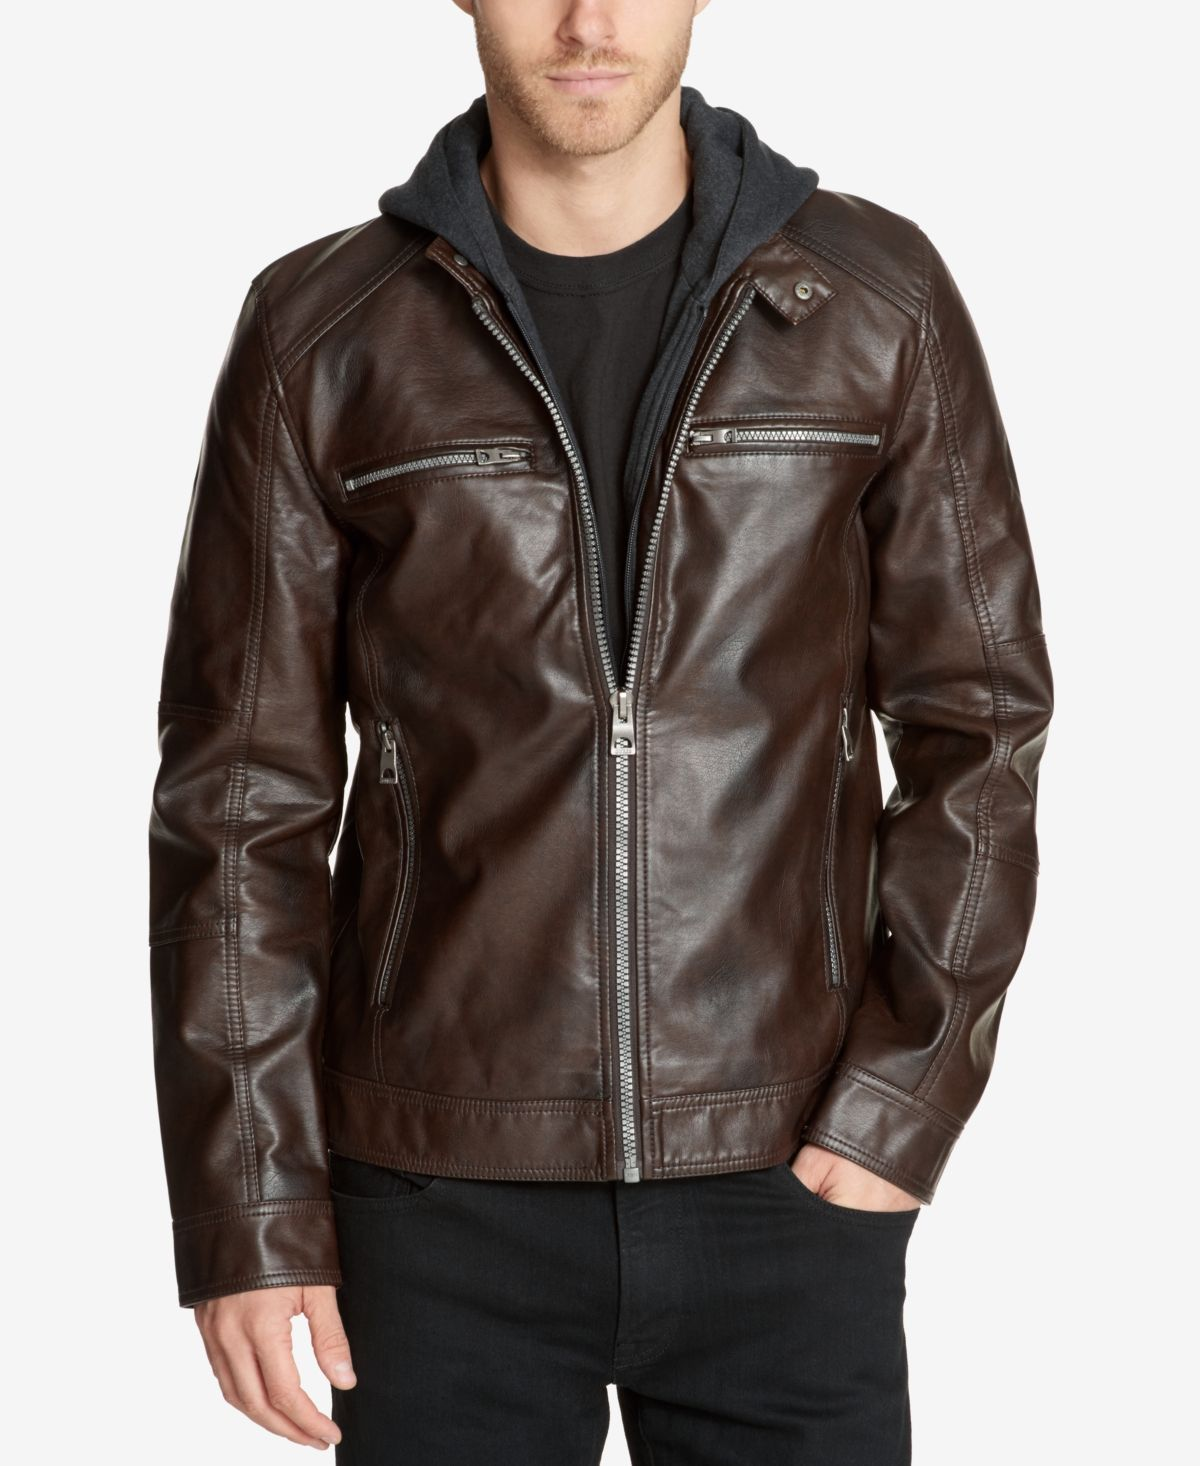 Guess Outerwear Dummy Page Oliver Guess Men Brown Leather Jacket Faux Leather Jackets [ 1466 x 1200 Pixel ]